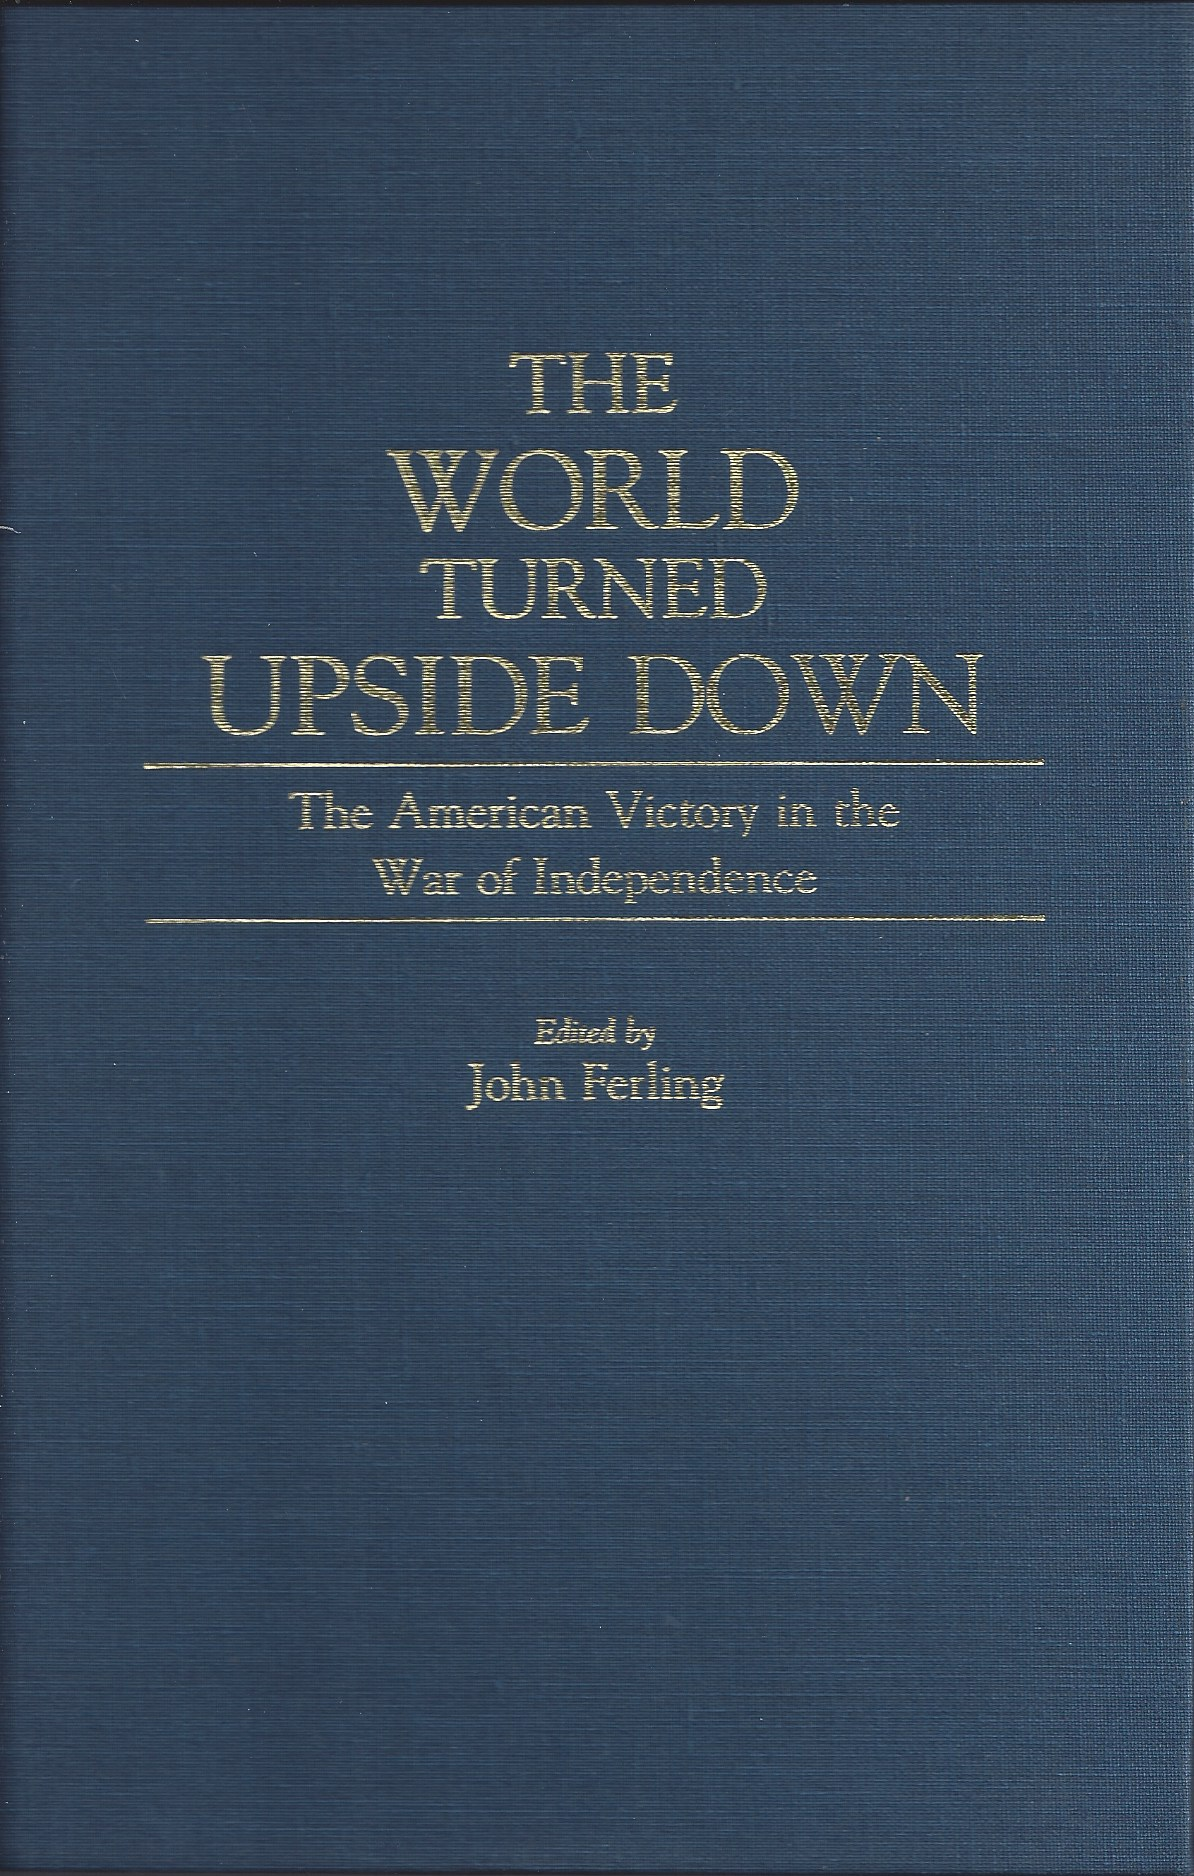 Image for The World Turned Upside Down The American Victory in the War of Independence